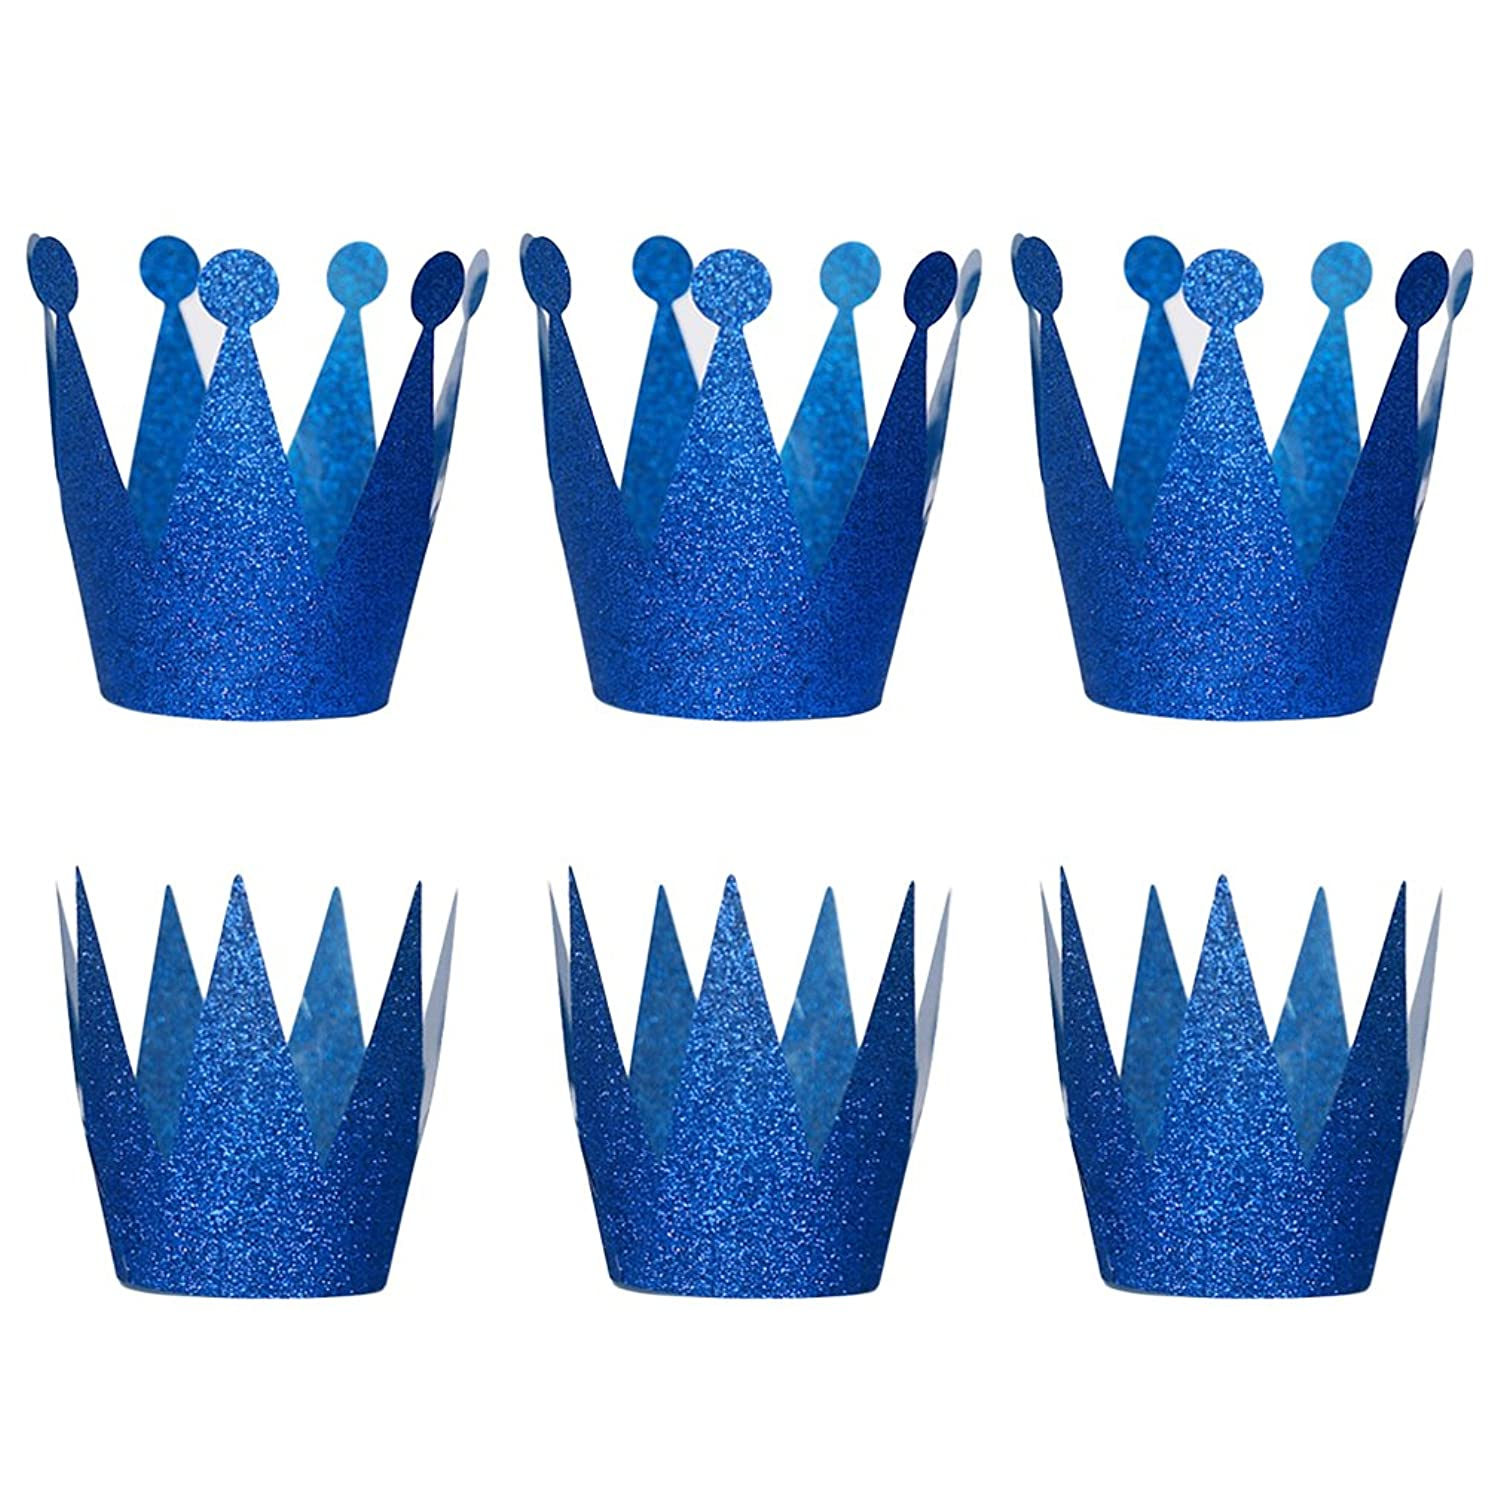 6PCS Glitter Birthday Crown Hats Party Hats Princess Prince Crowns for Kids and Adults Party Decorations (Blue)